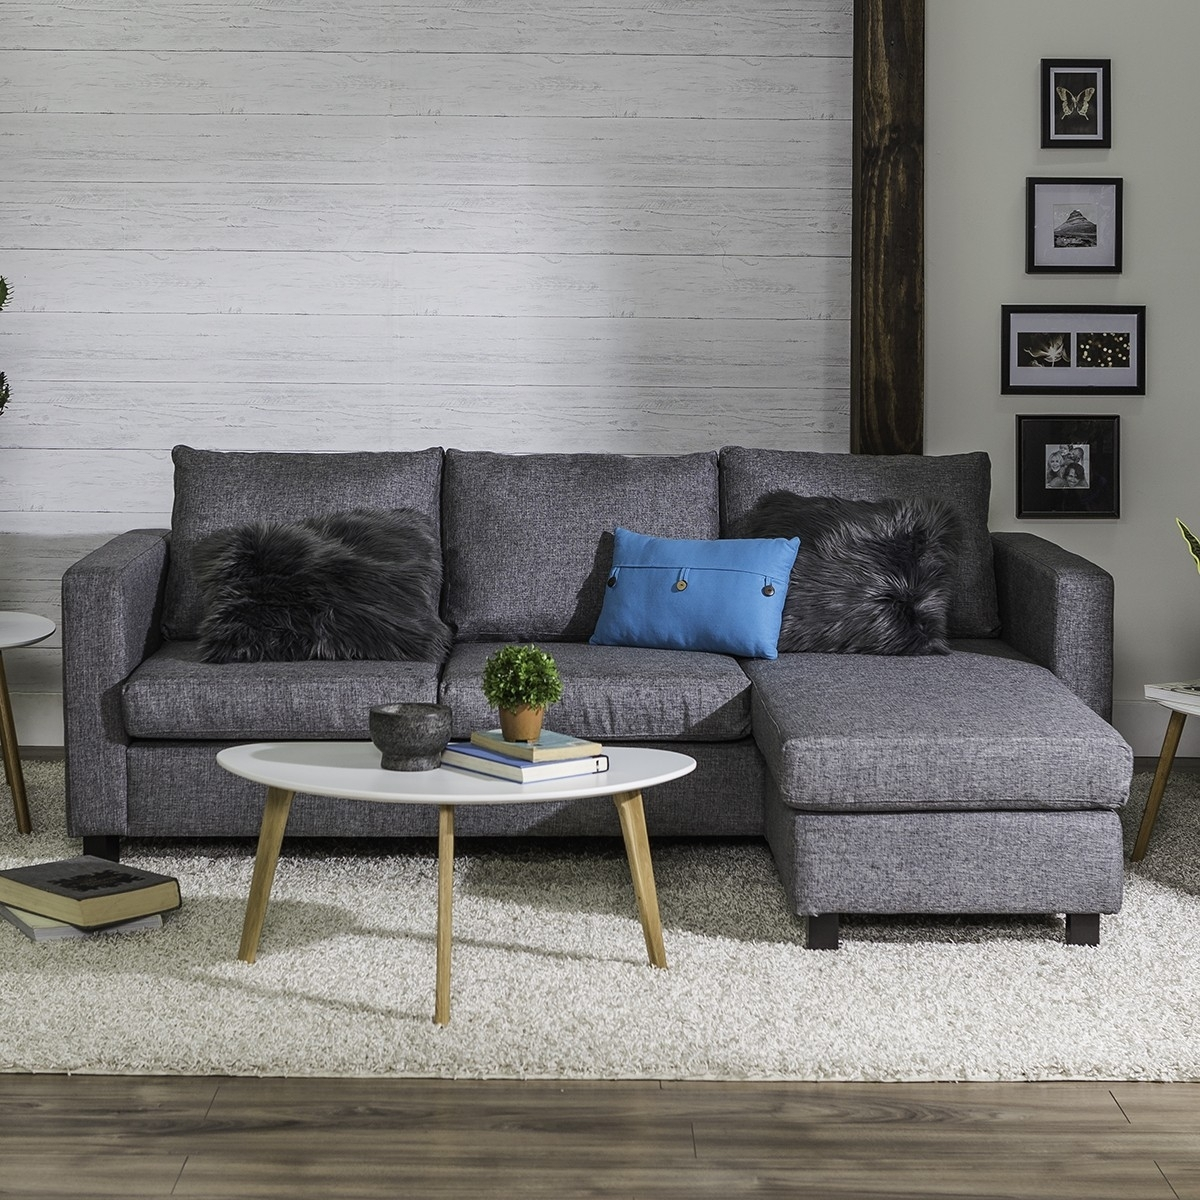 Casa Corner Sofa (Grey) Within Jysk Sectional Sofas (Image 5 of 10)